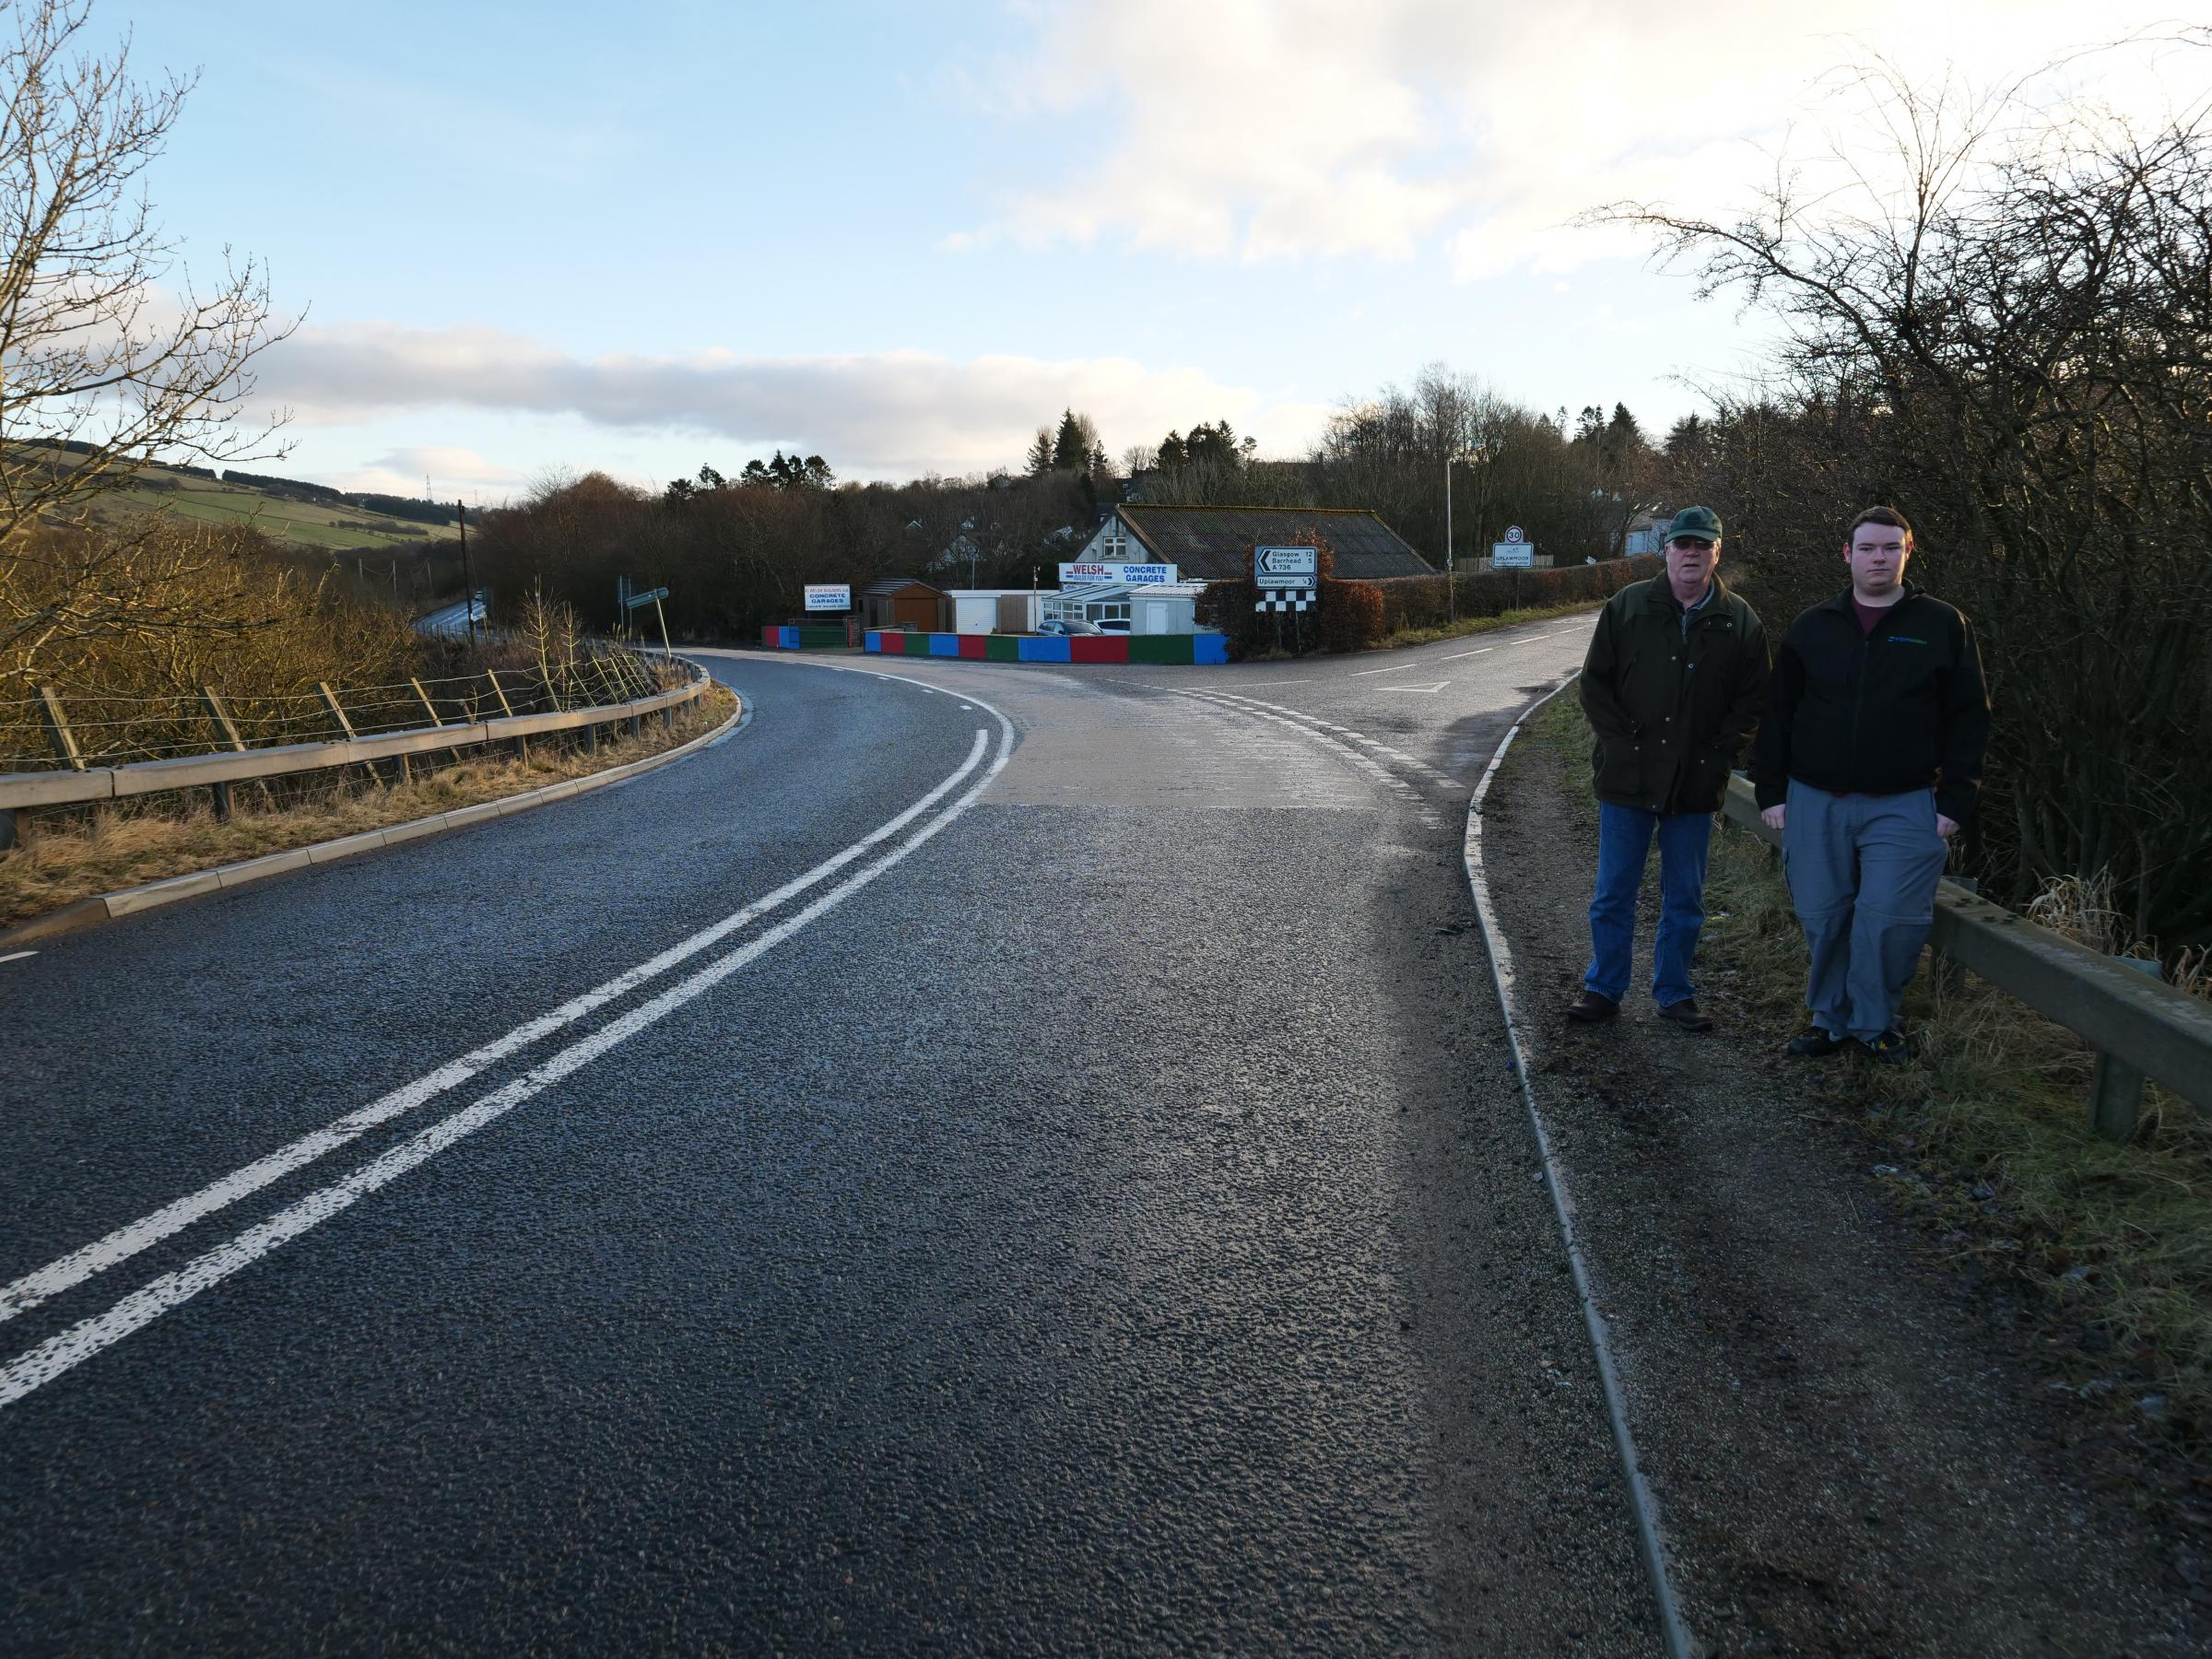 Community councillors raised the issue of safety on the A736 with the council back in February after figures revealed a consistent spate of accidents on the route